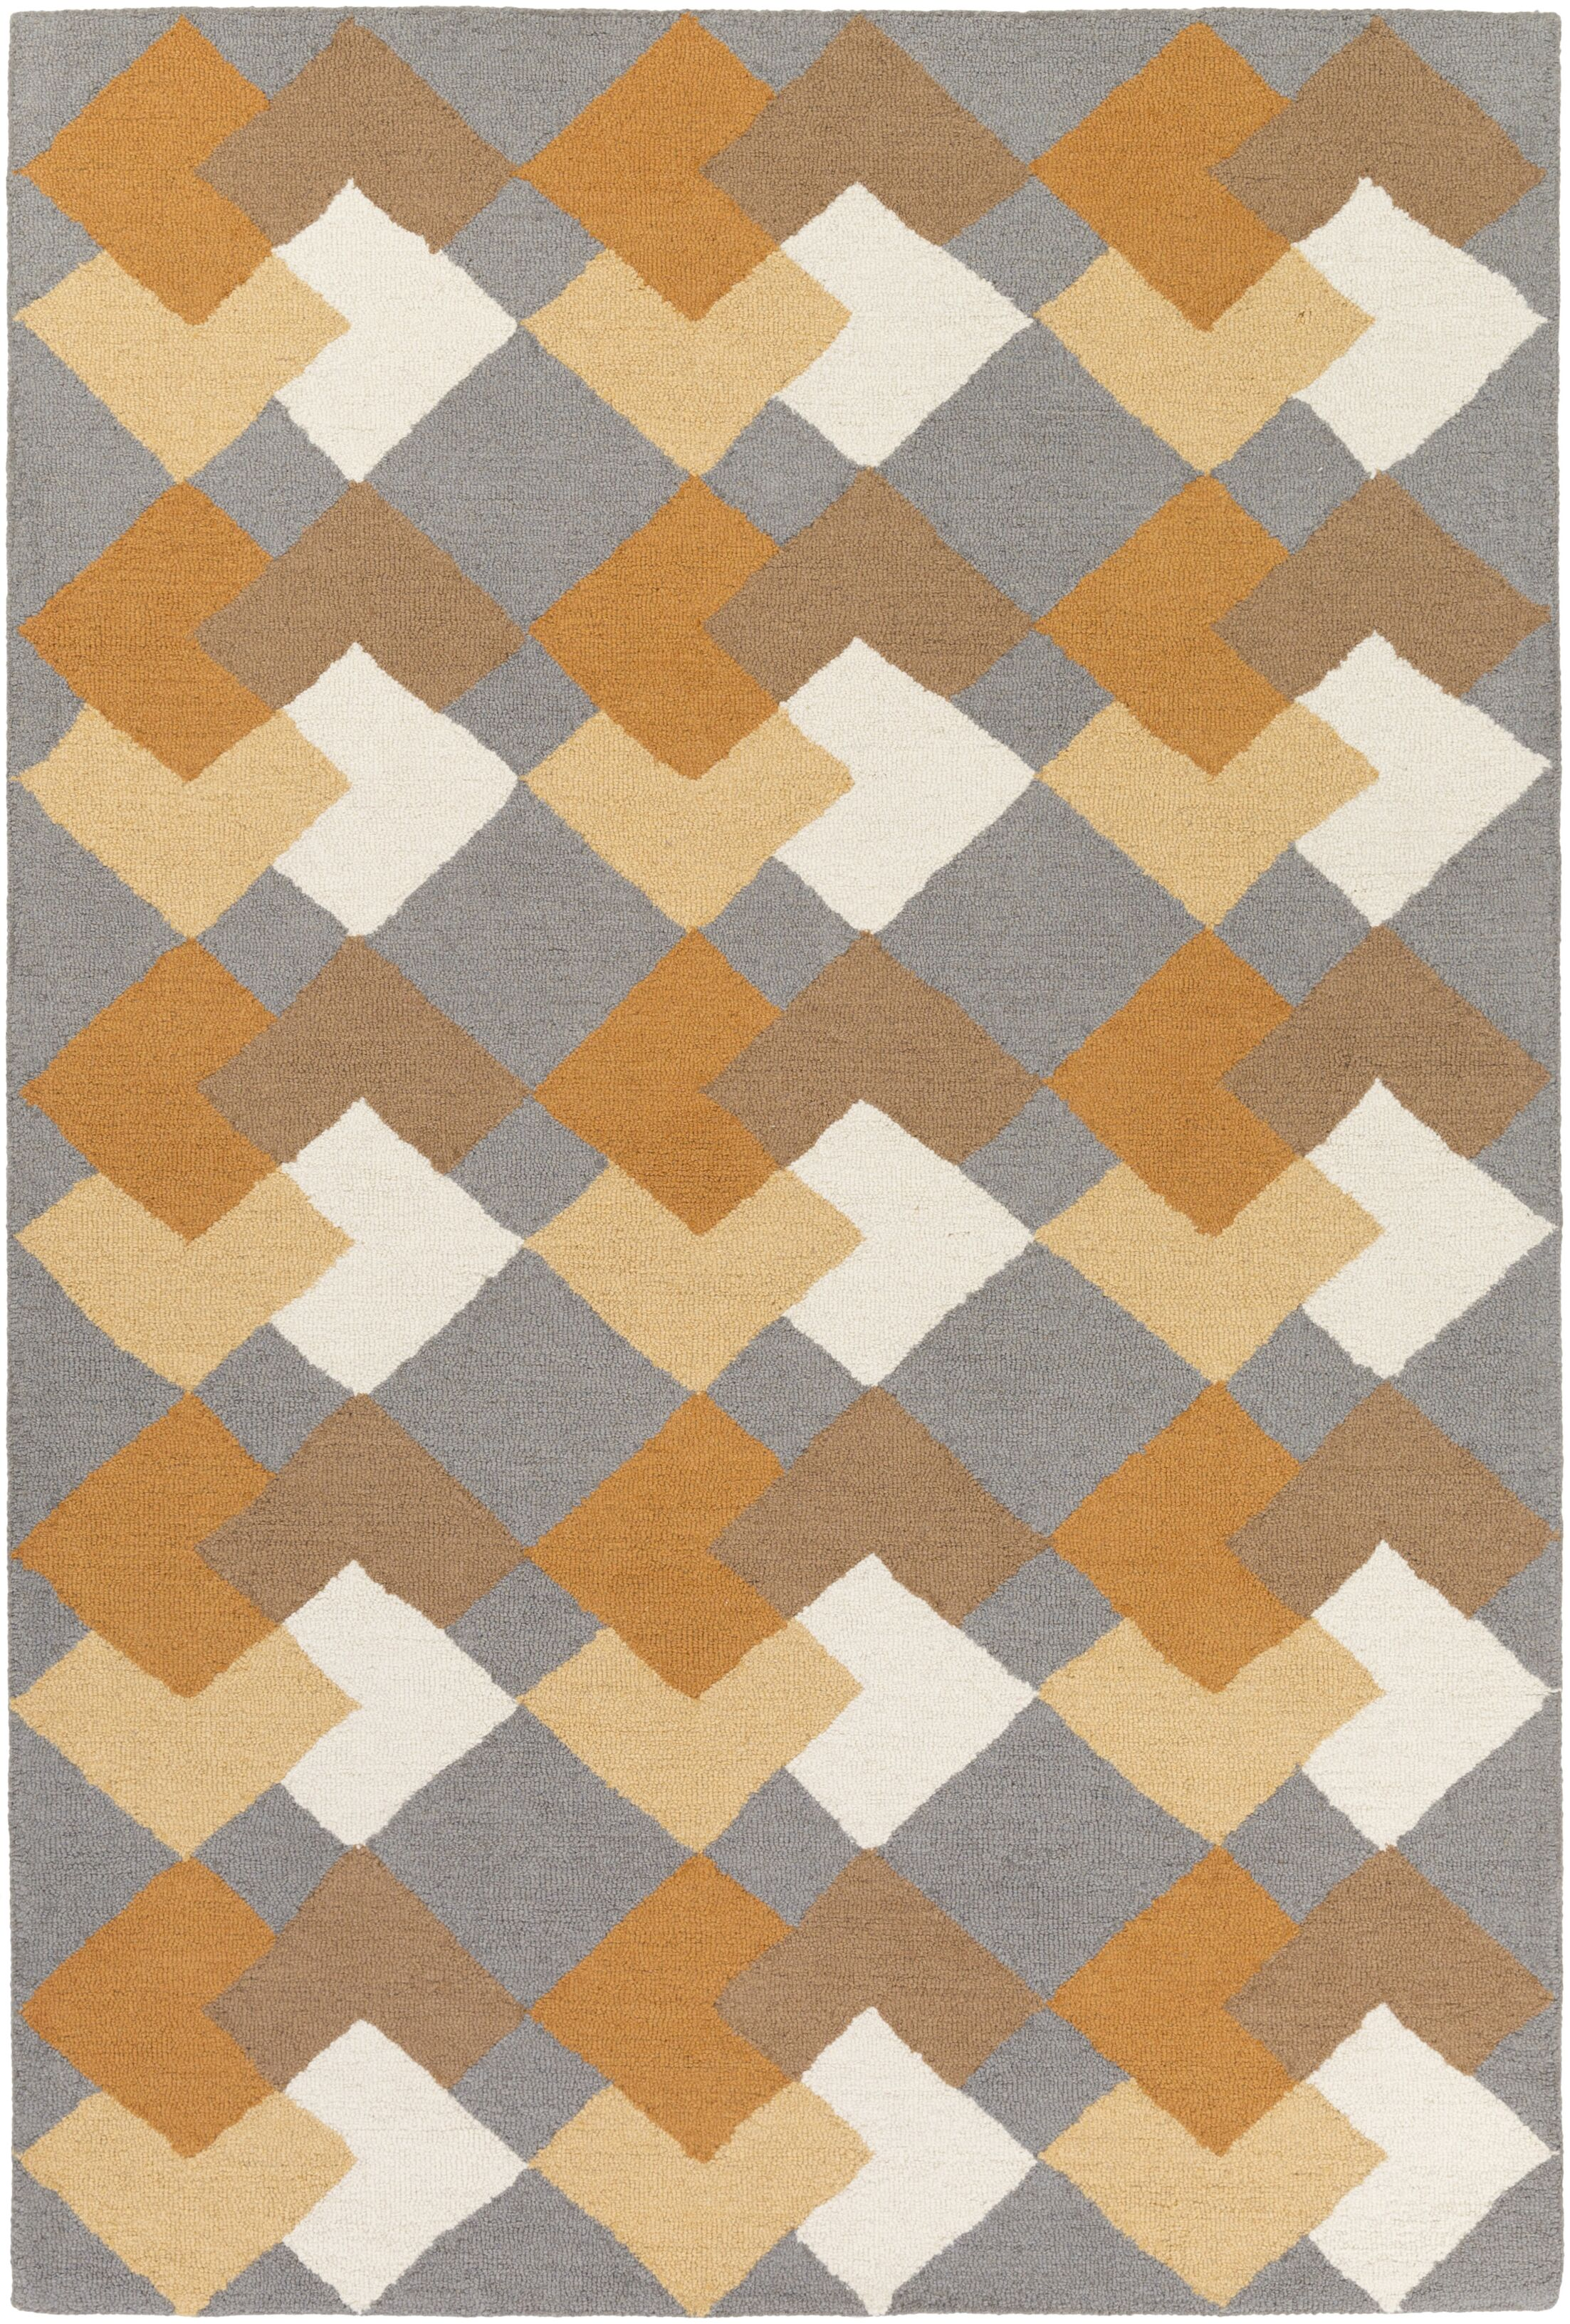 Younker Hand-Crafted Multi-Colored Area Rug Rug Size: Rectangle 8' x 11'